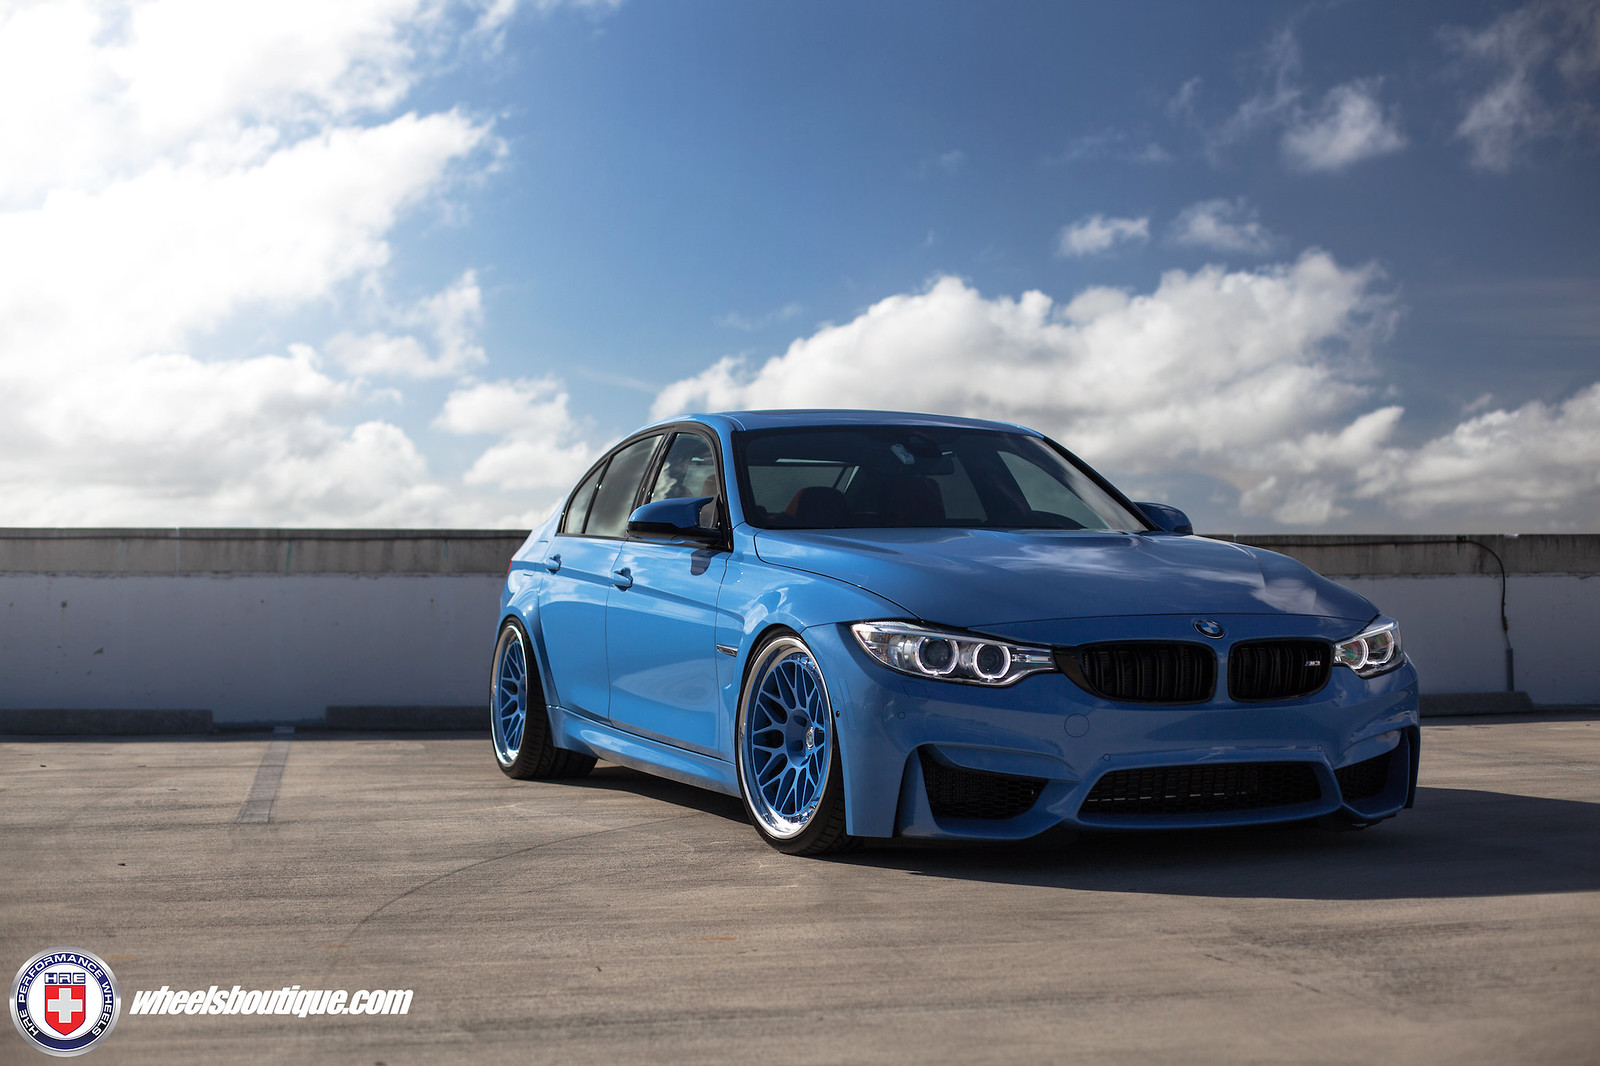 wheels boutique yas marina bmw f80 m3 x hre classic 300. Black Bedroom Furniture Sets. Home Design Ideas